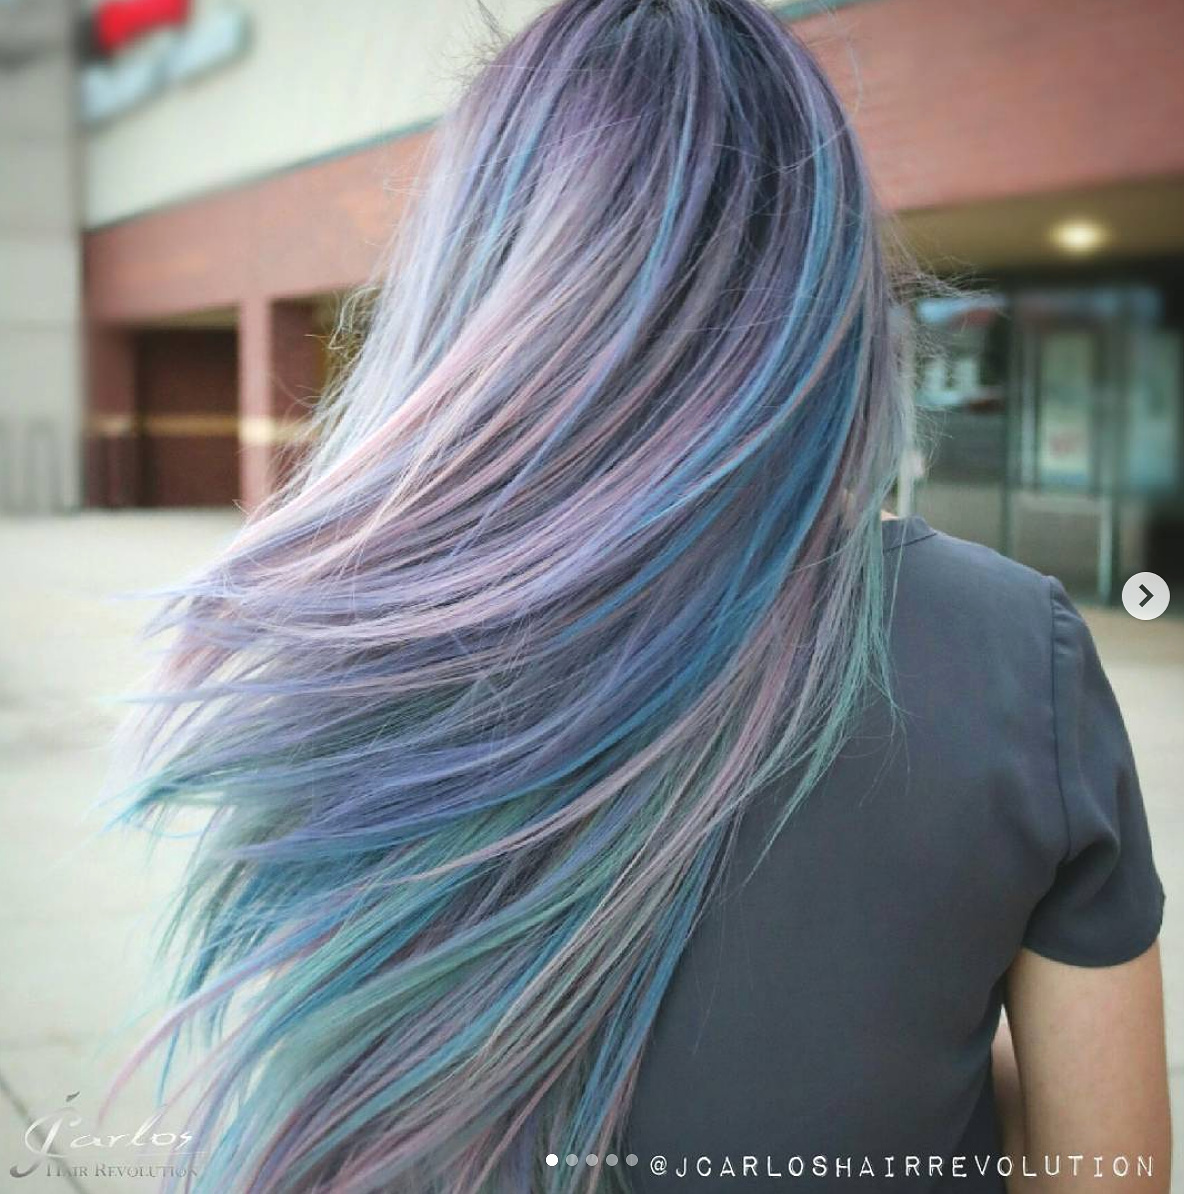 Correctives / Fantasy Colors Starting at $280 - This service is for clients looking to add fantasy, vivid or pastel colors to their hair like purples, bright reds, greens… etc.All color services include an In-Salon Olaplex Treatment and blow-dry with style. Keep in mind it can take multiple hours… make sure to block your calendar and not make any plans. You will be in the chair for multiple hours and there are no shortcuts. We can only estimate a time frame and price for the service... final pricing will be given at the end of the serviceFor all color services, charges are estimate at $100 for the first hour and $60 for every additional hour. Price will vary based on the desire look.